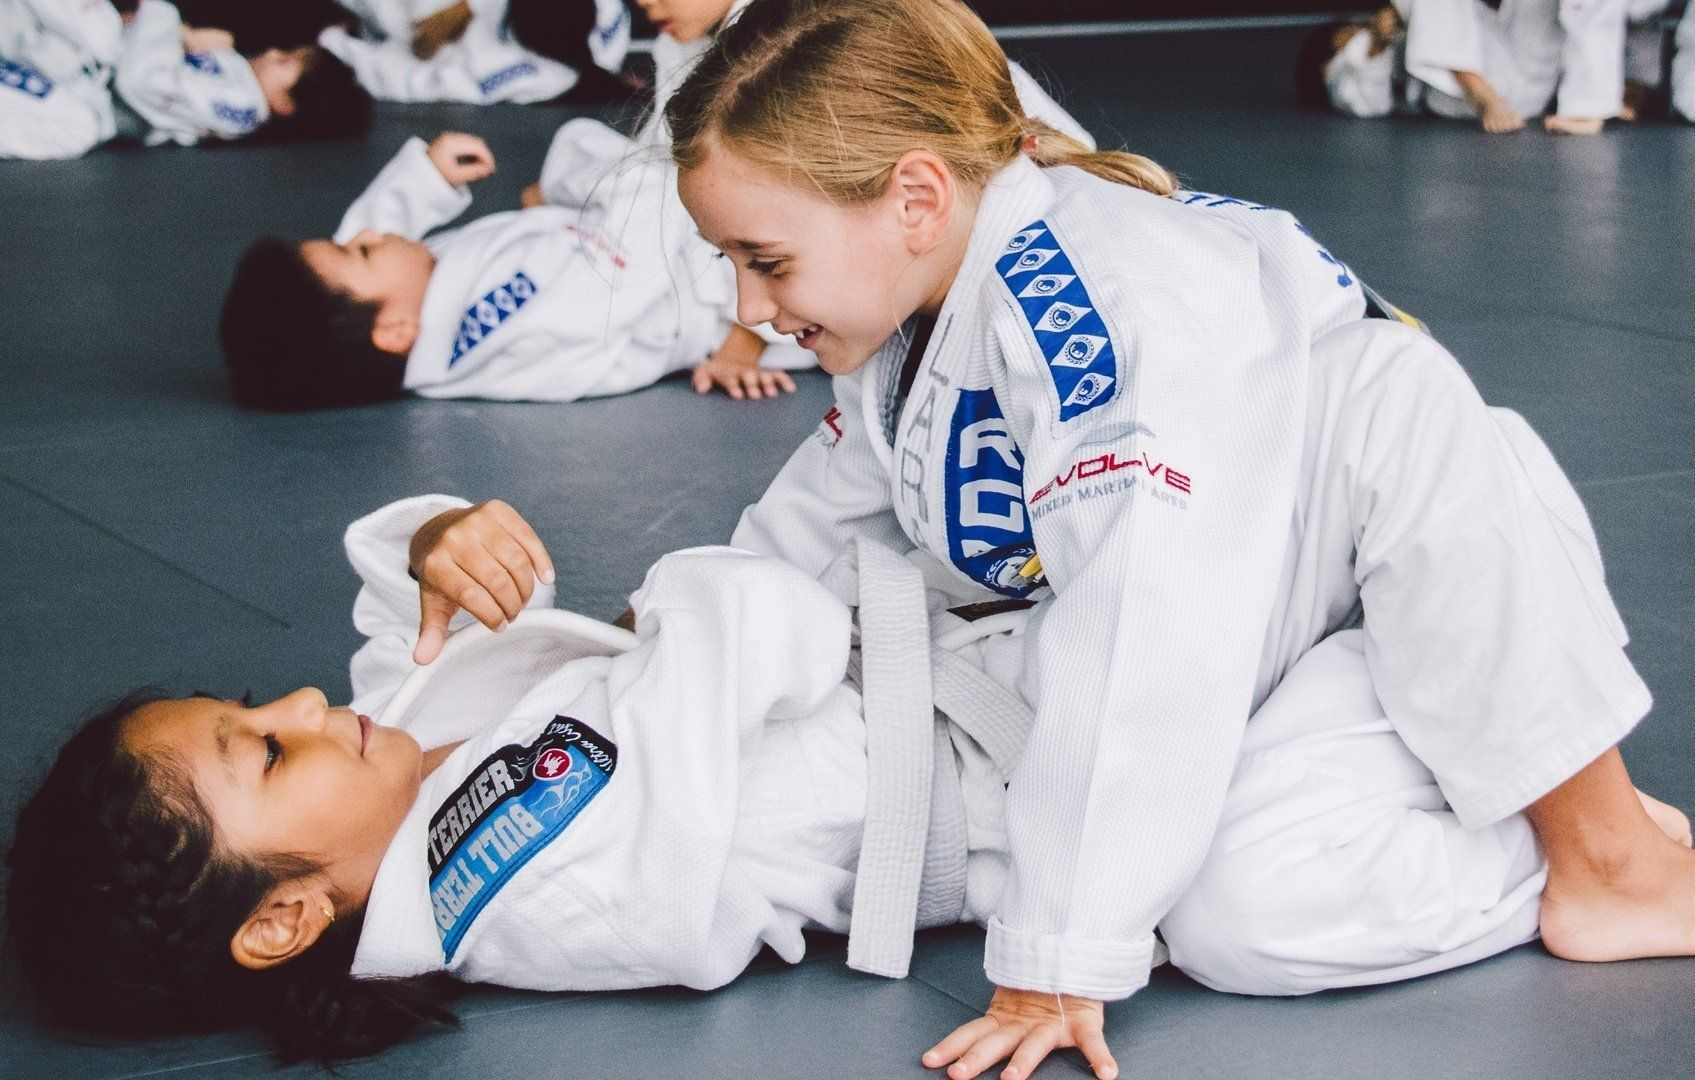 By enrolling your daughter in a martial arts program, she will inherit confidence, mental strength, discipline, focus, and much more.